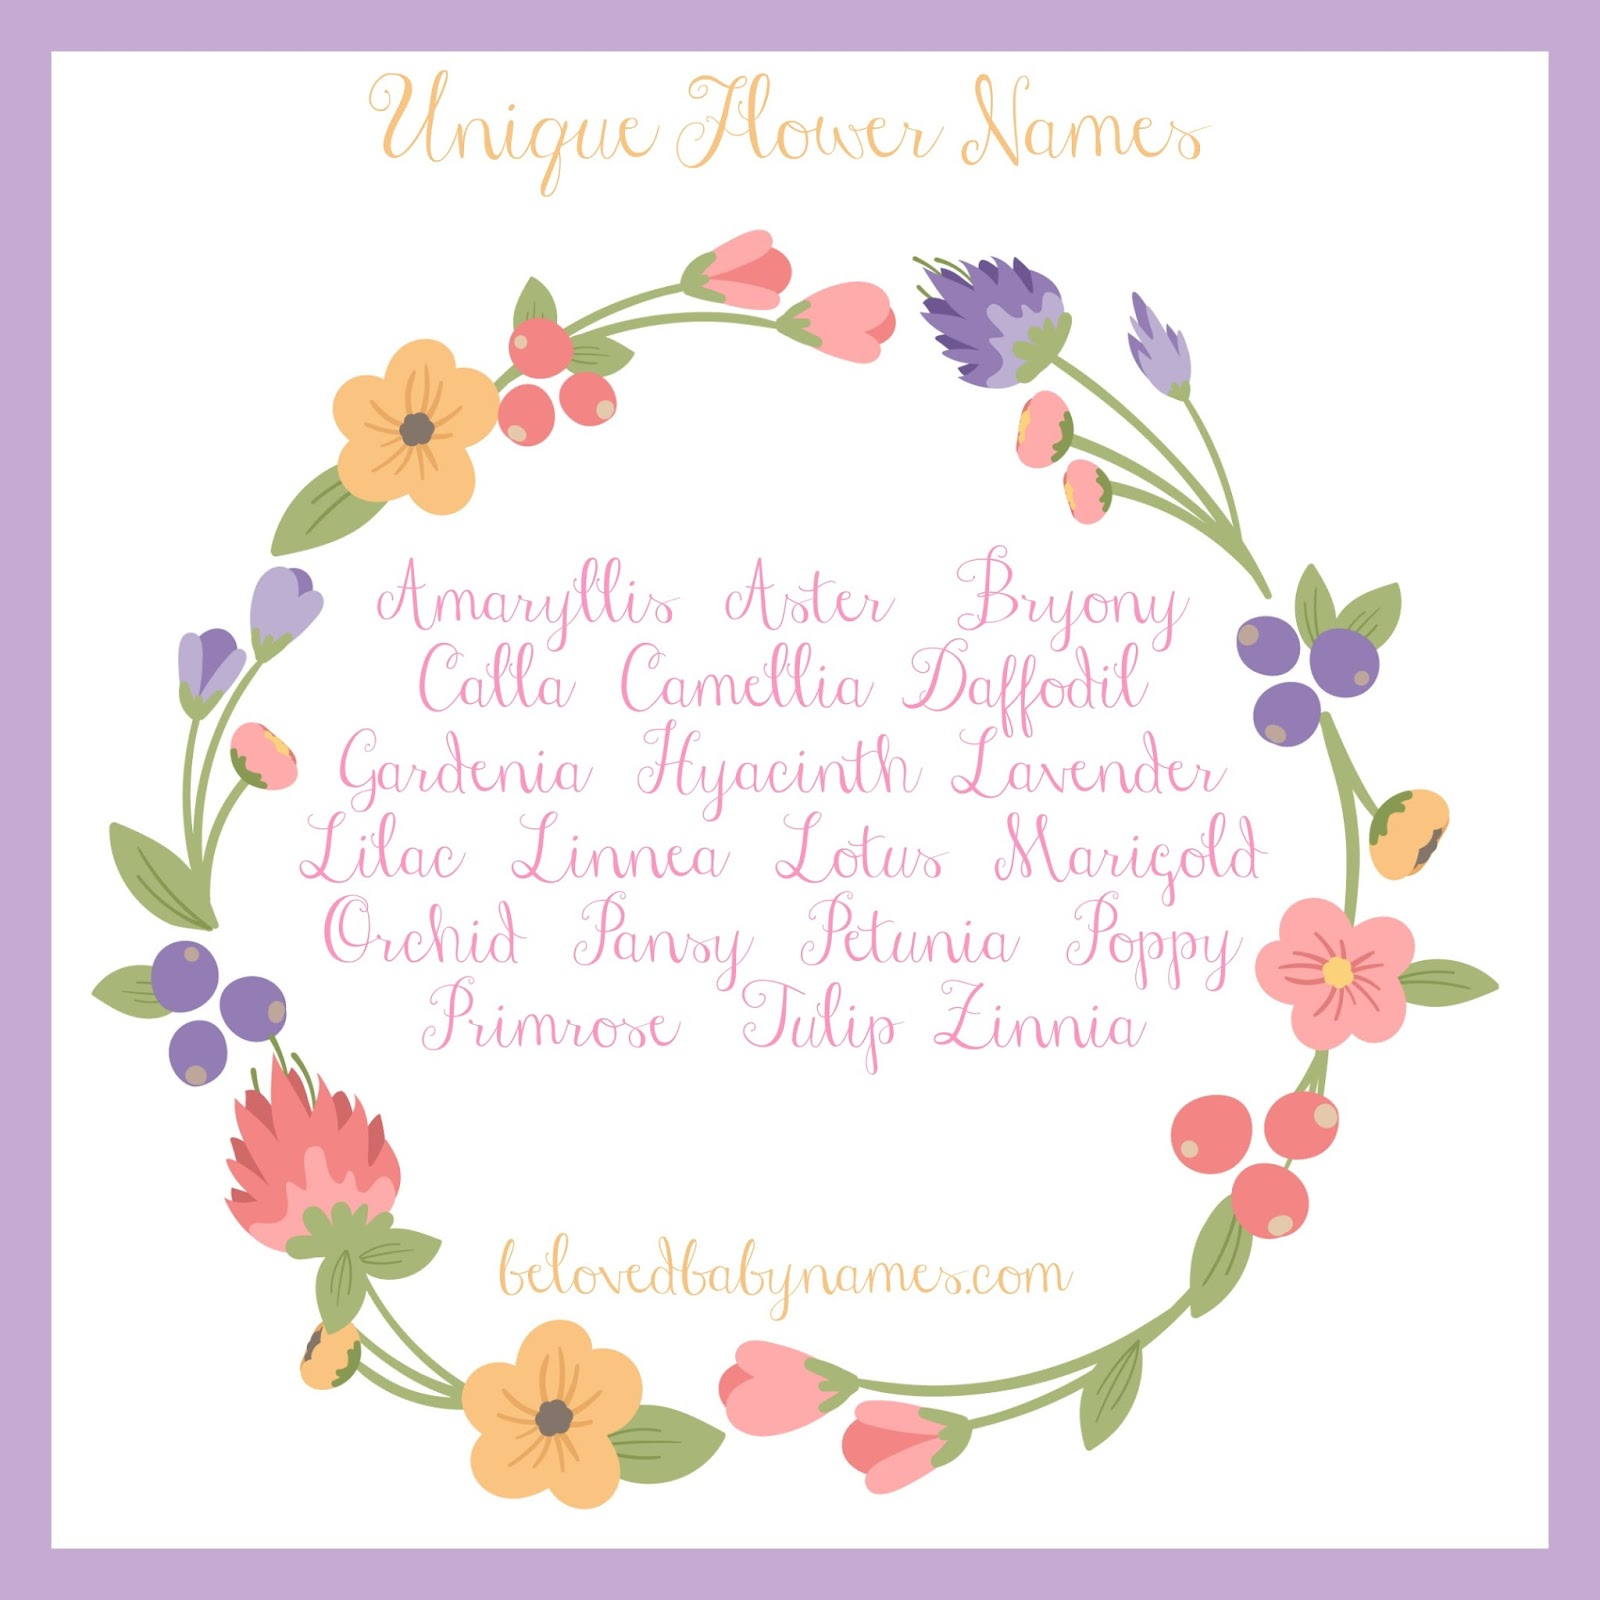 Beloved Baby Names: Unique Flower Names